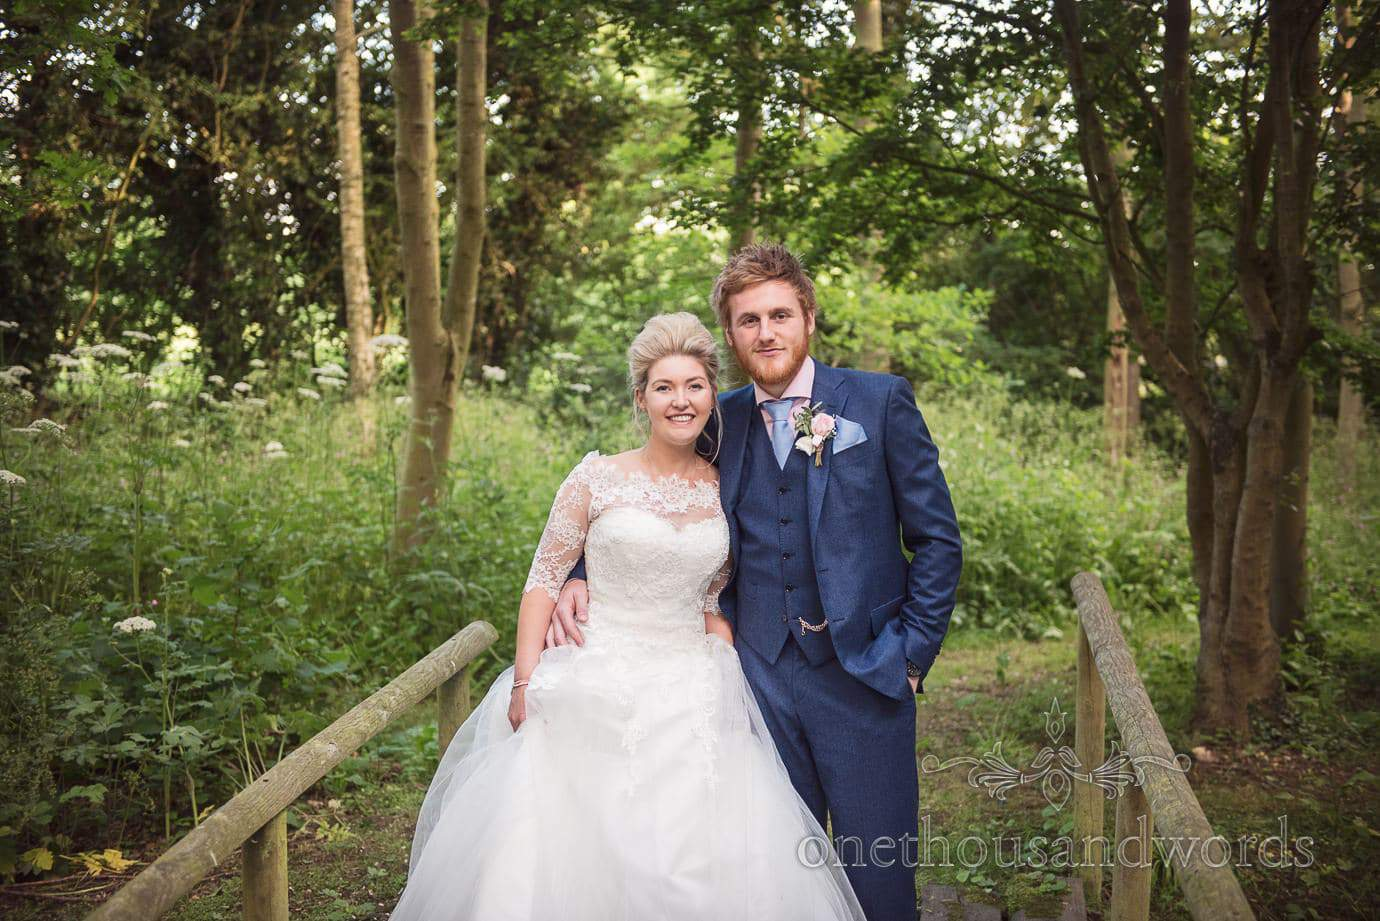 Bride and groom on wooden bridge in country wedding woodland photograph